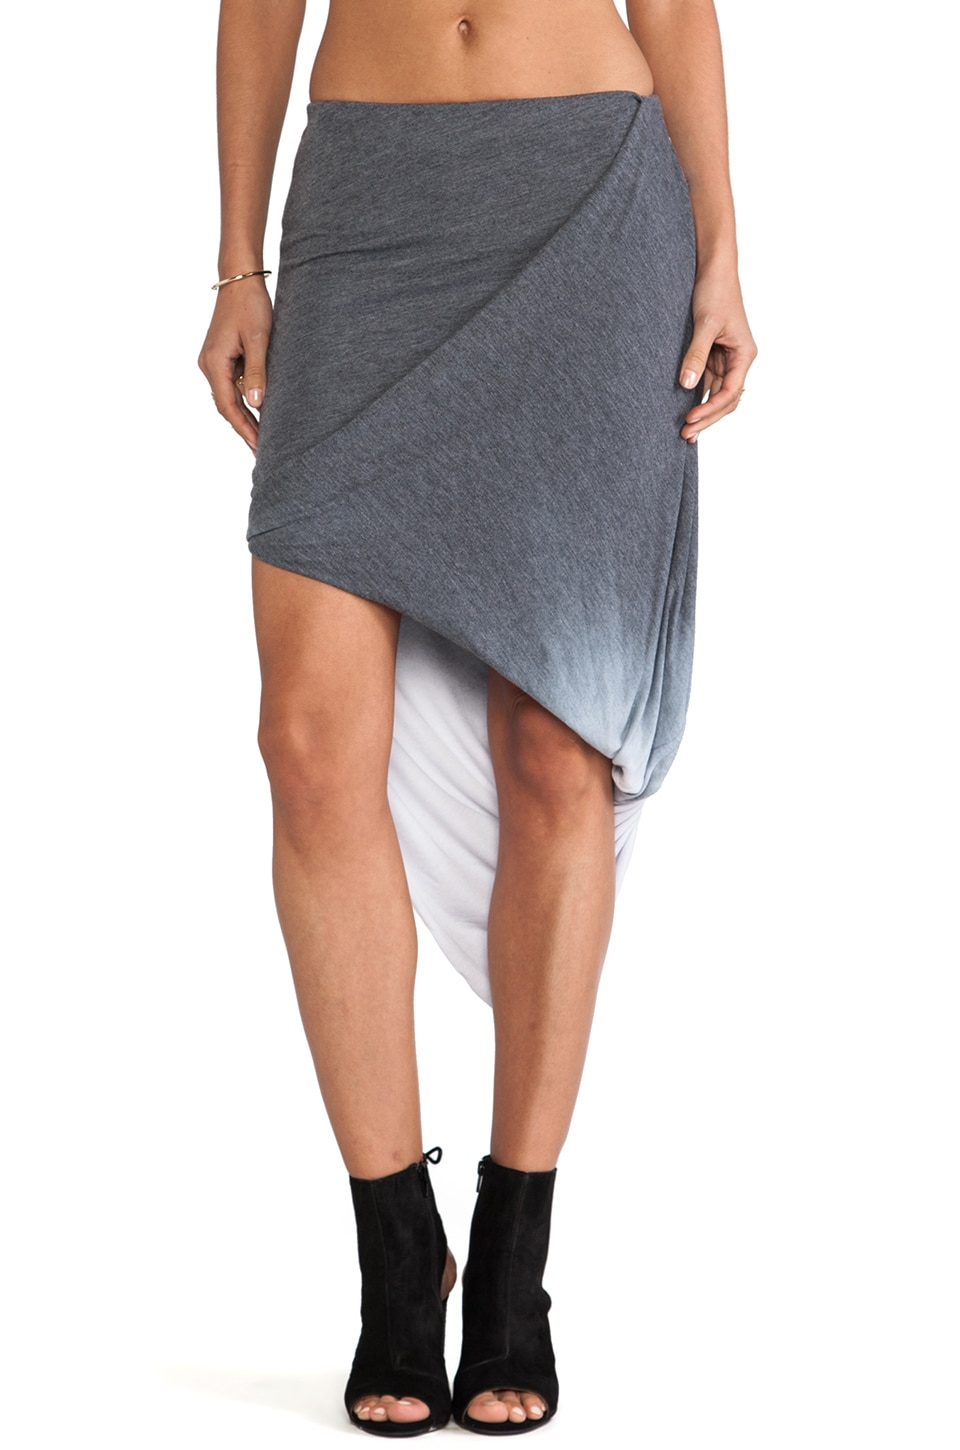 Saint Grace Caden Rayon Jersey Skirt in Black OW